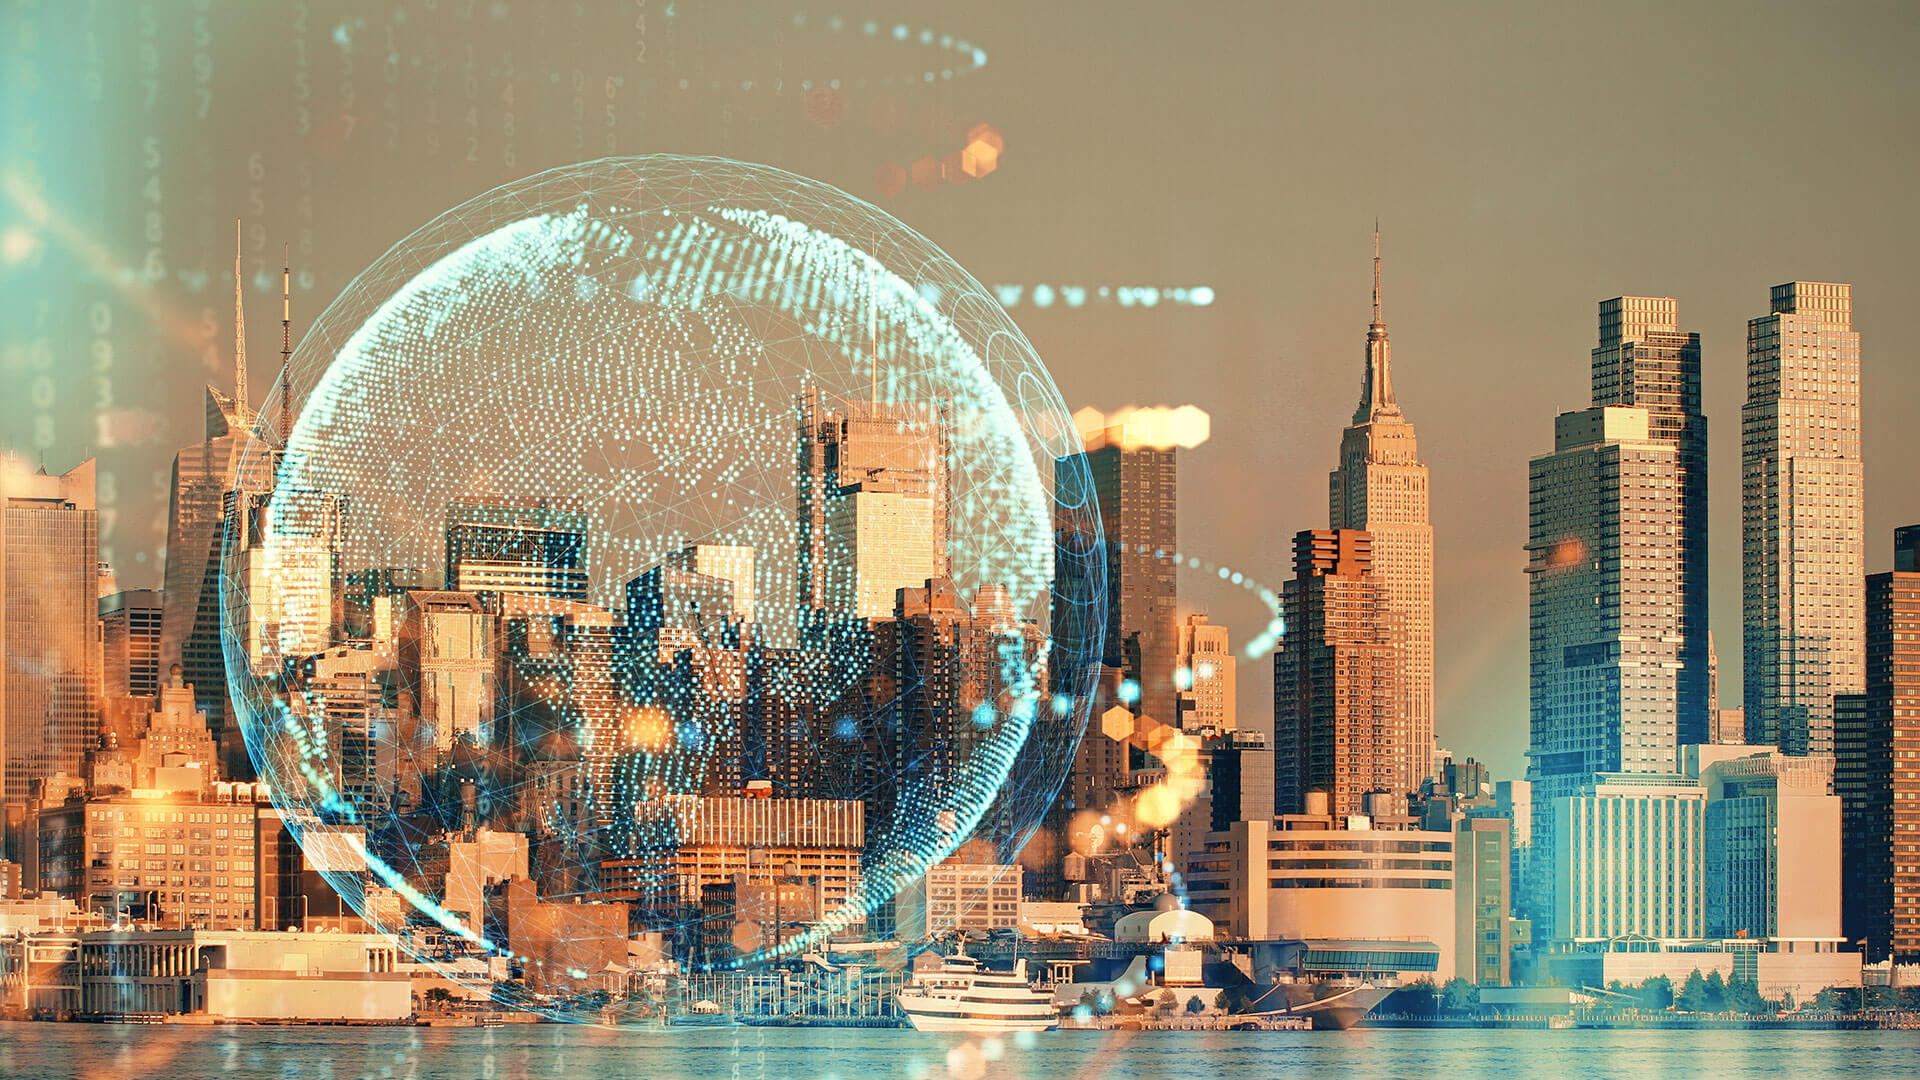 A cityscape with a virtual overlay of a globe and data.